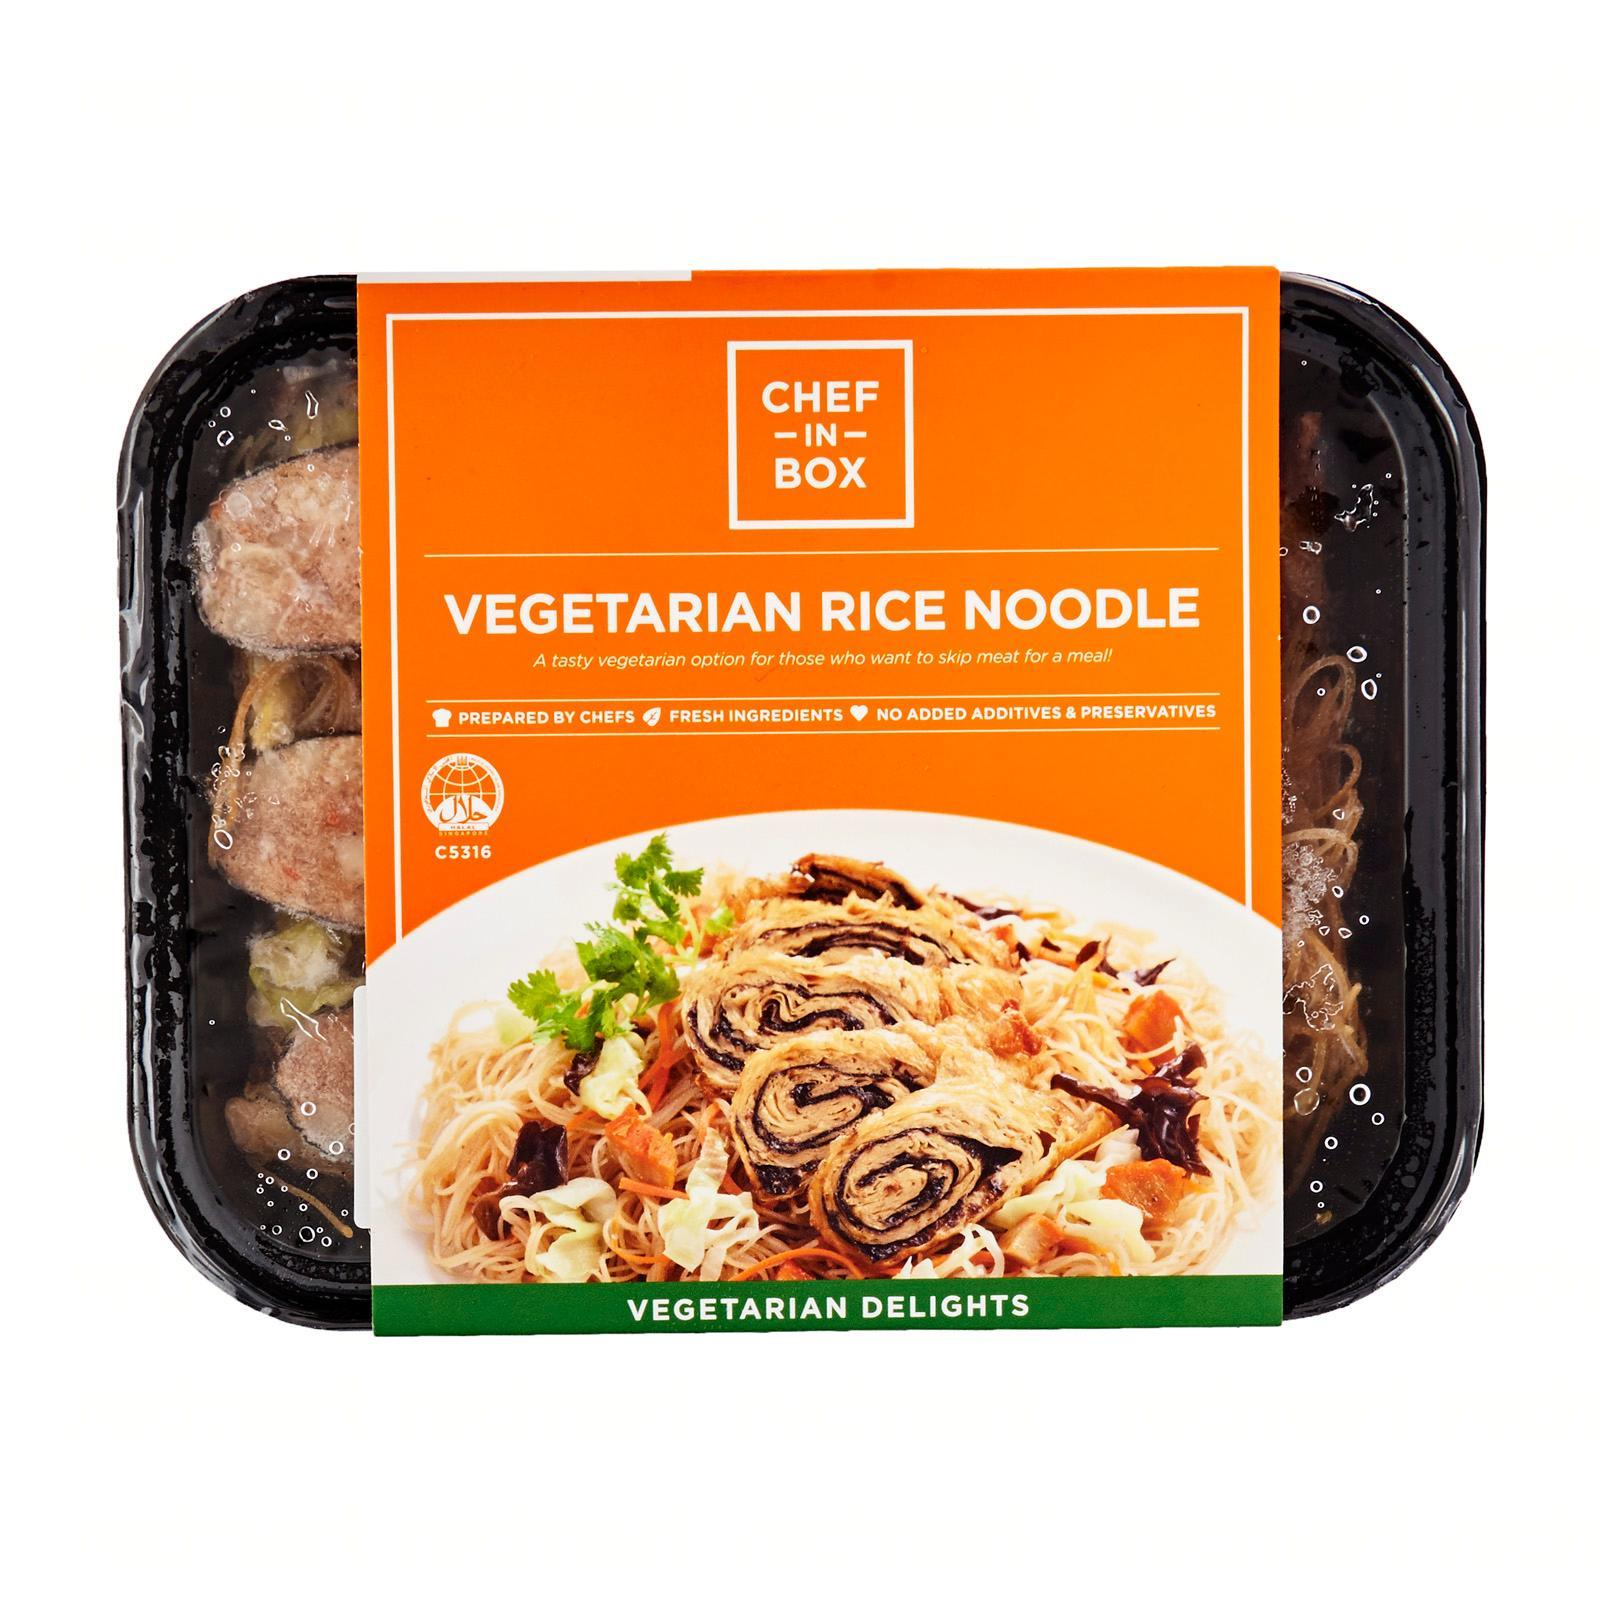 Chef-in-Box Vegetarian Rice Noodles - Frozen